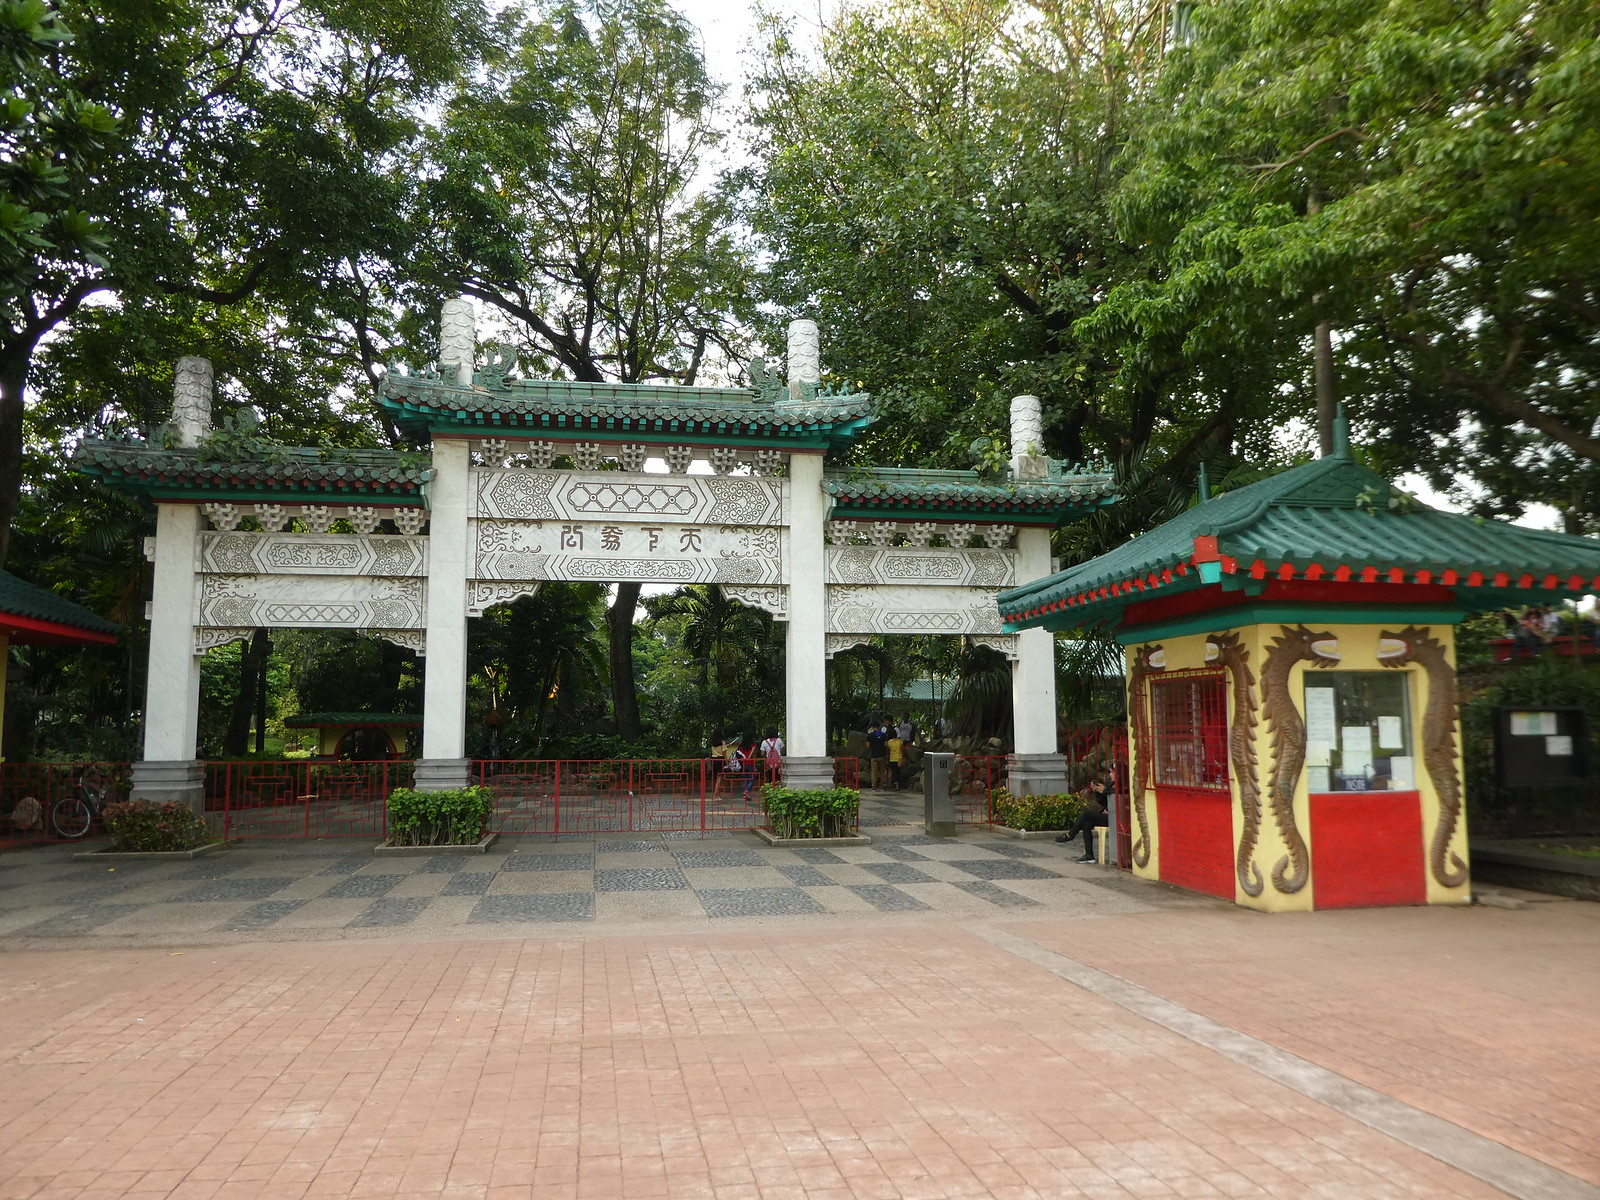 Entrance gate to the Chinese Garden, Rizal Park,, Manila